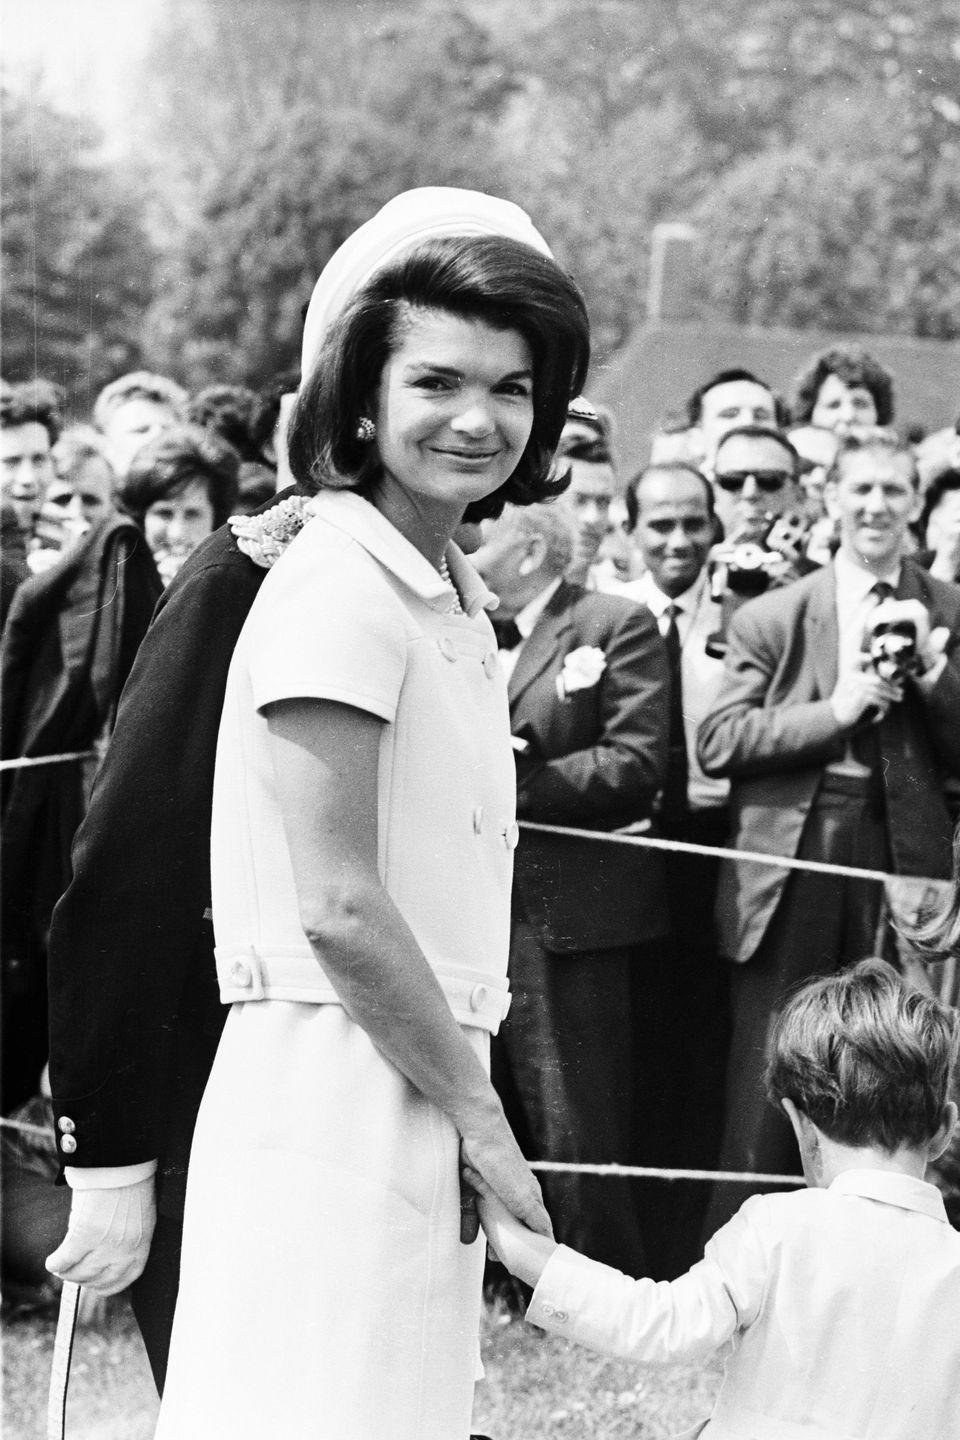 <p>Although certainly a difficult time, Jackie used fashion as an armor, looking beautiful as always in a short-sleeved suit while attending a memorial for John F. Kennedy in 1965.</p>